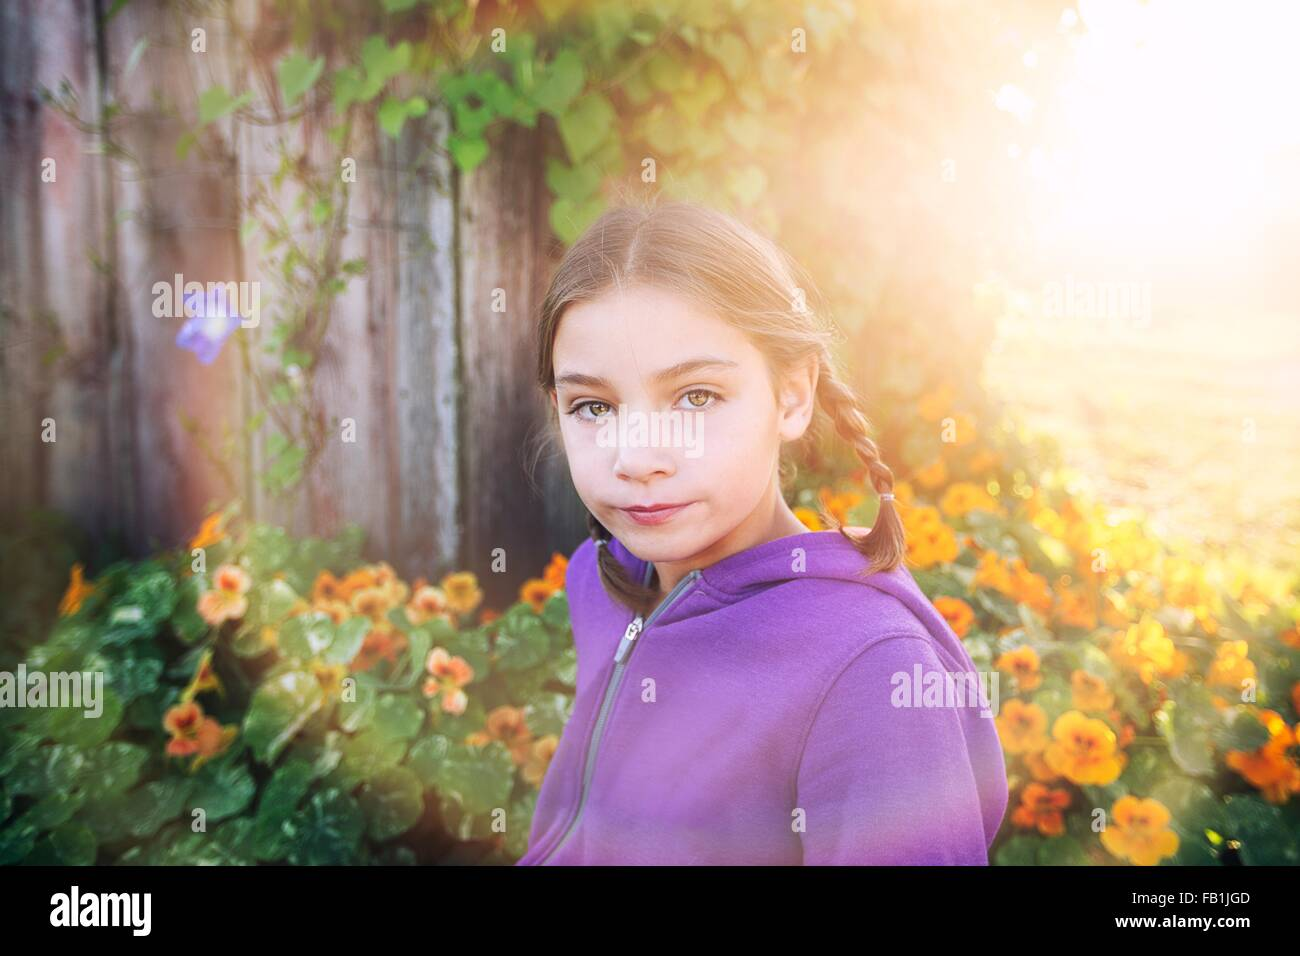 Portrait of girl with plaits in front of orange flowers looking at camera - Stock Image